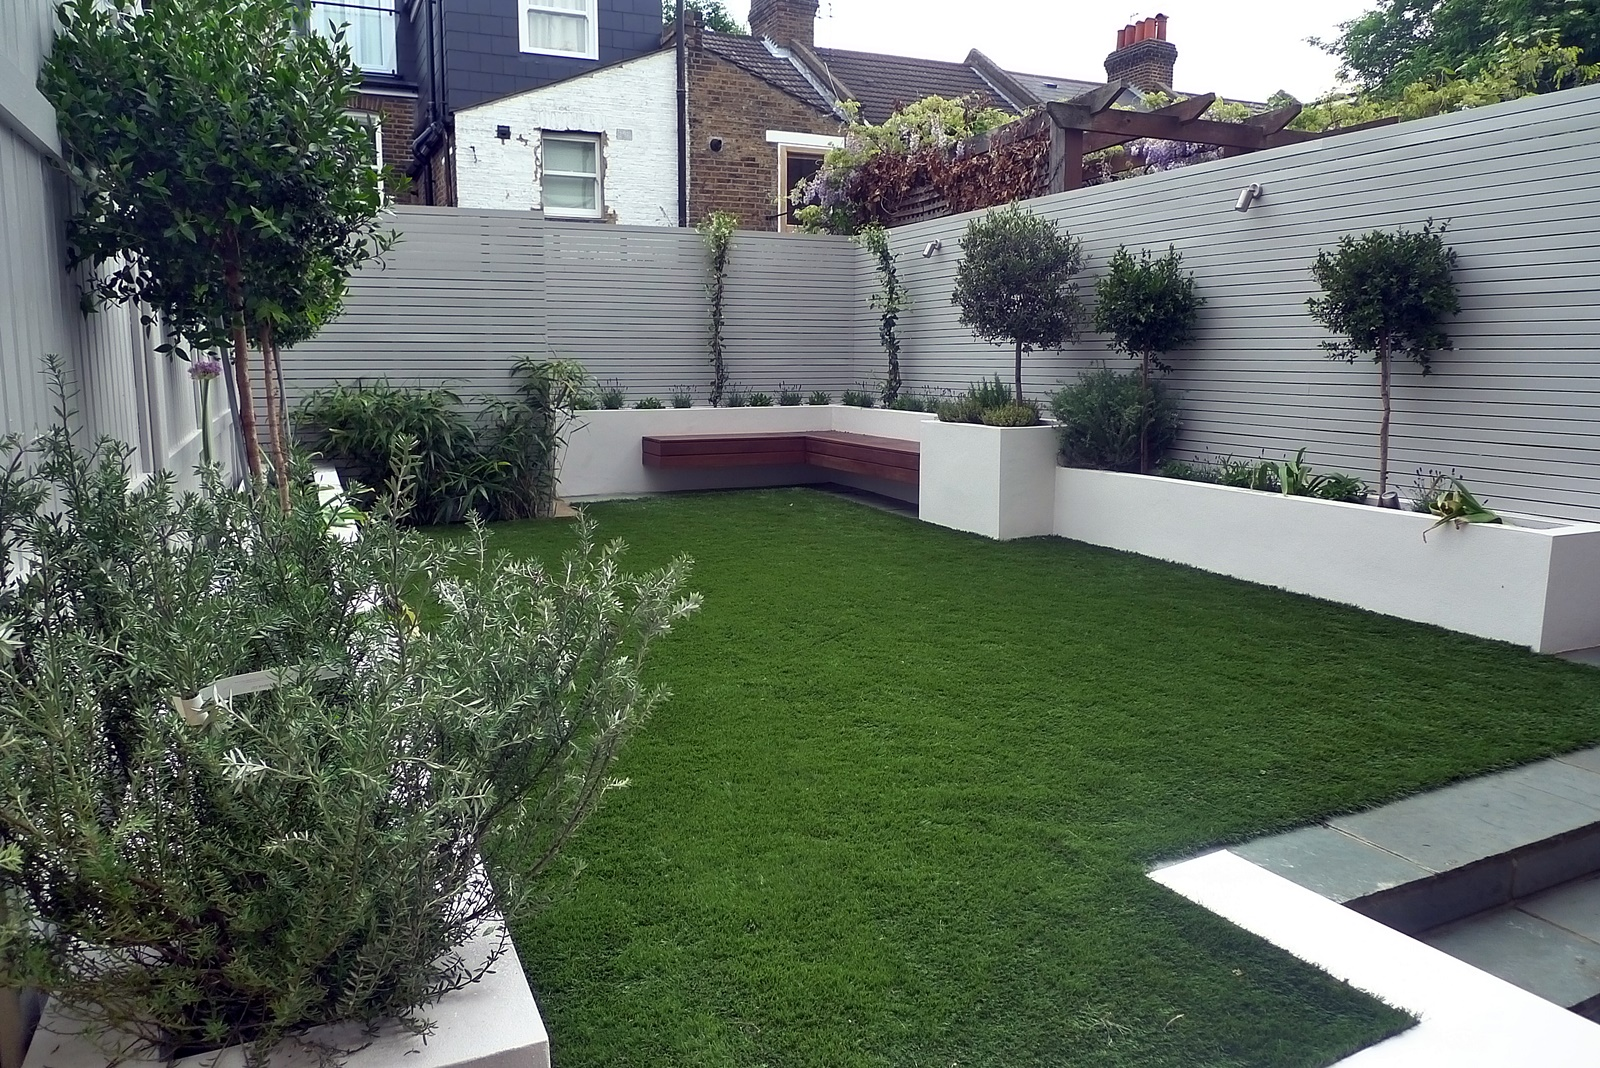 Artificial grass easi grass grey painted fences modern ...